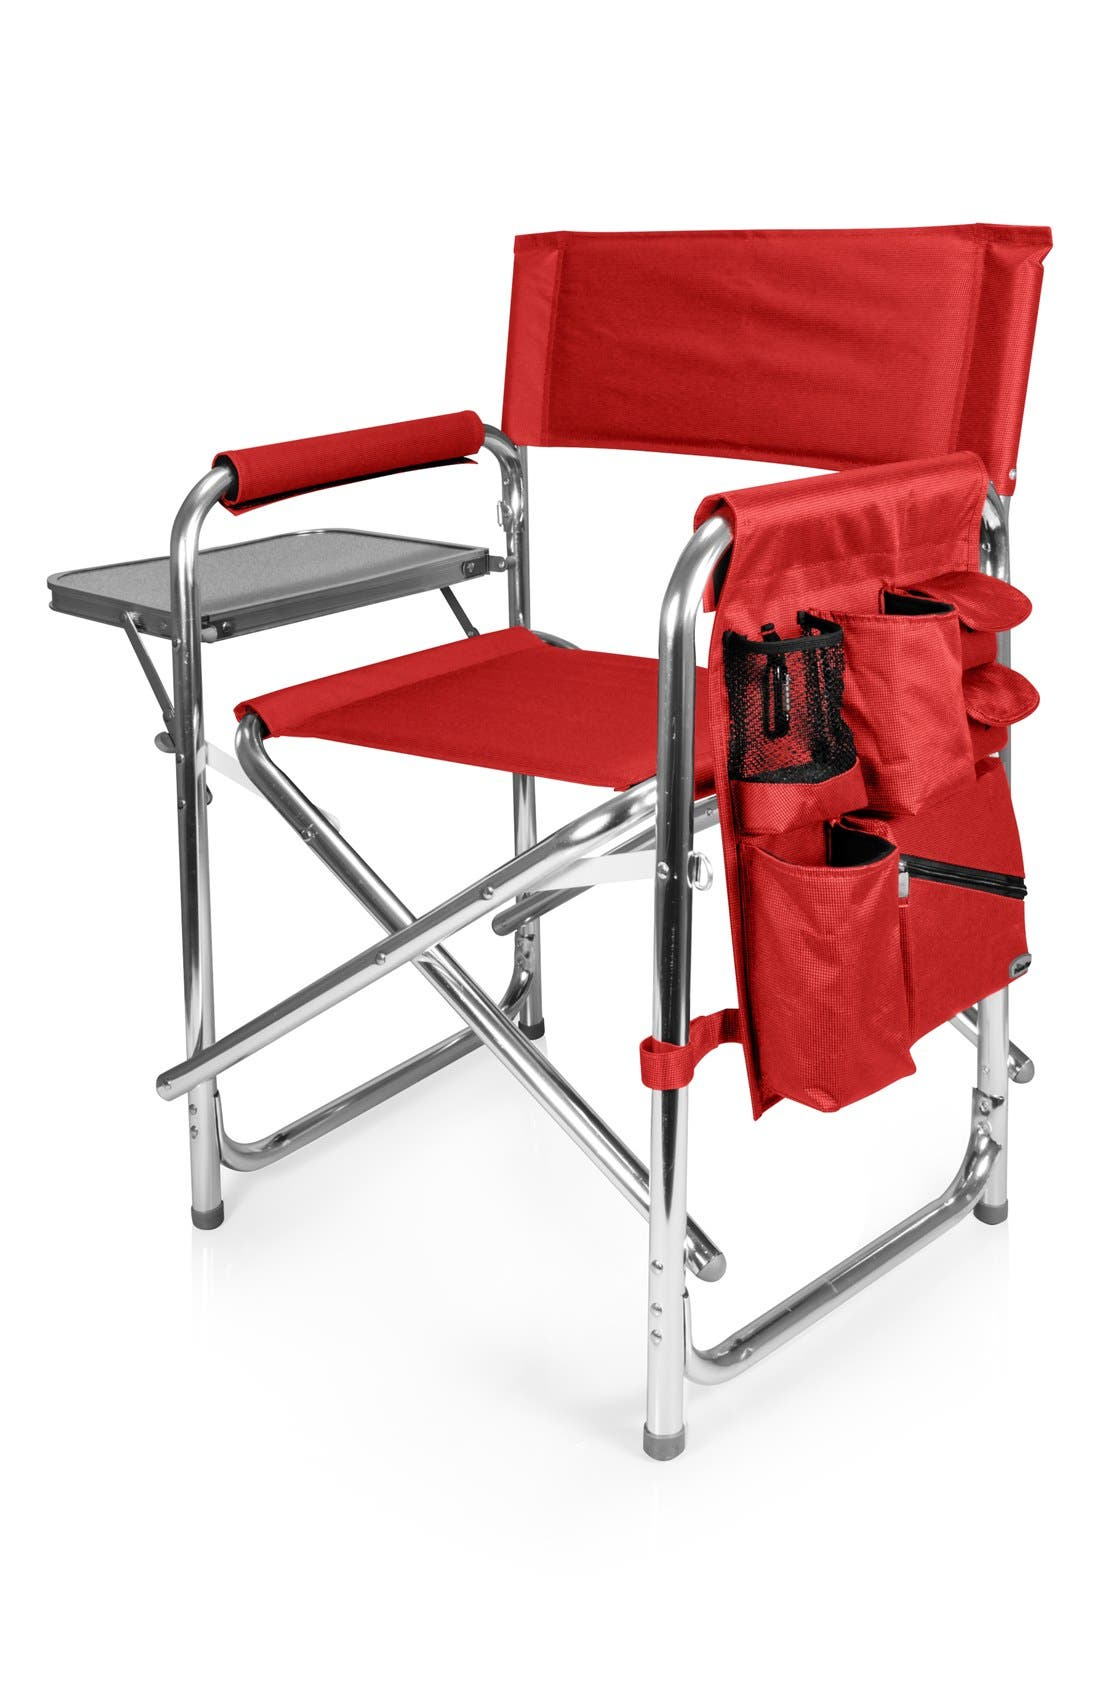 Alternate Image 1 Selected - Picnic Time 'Sports' Folding Chair